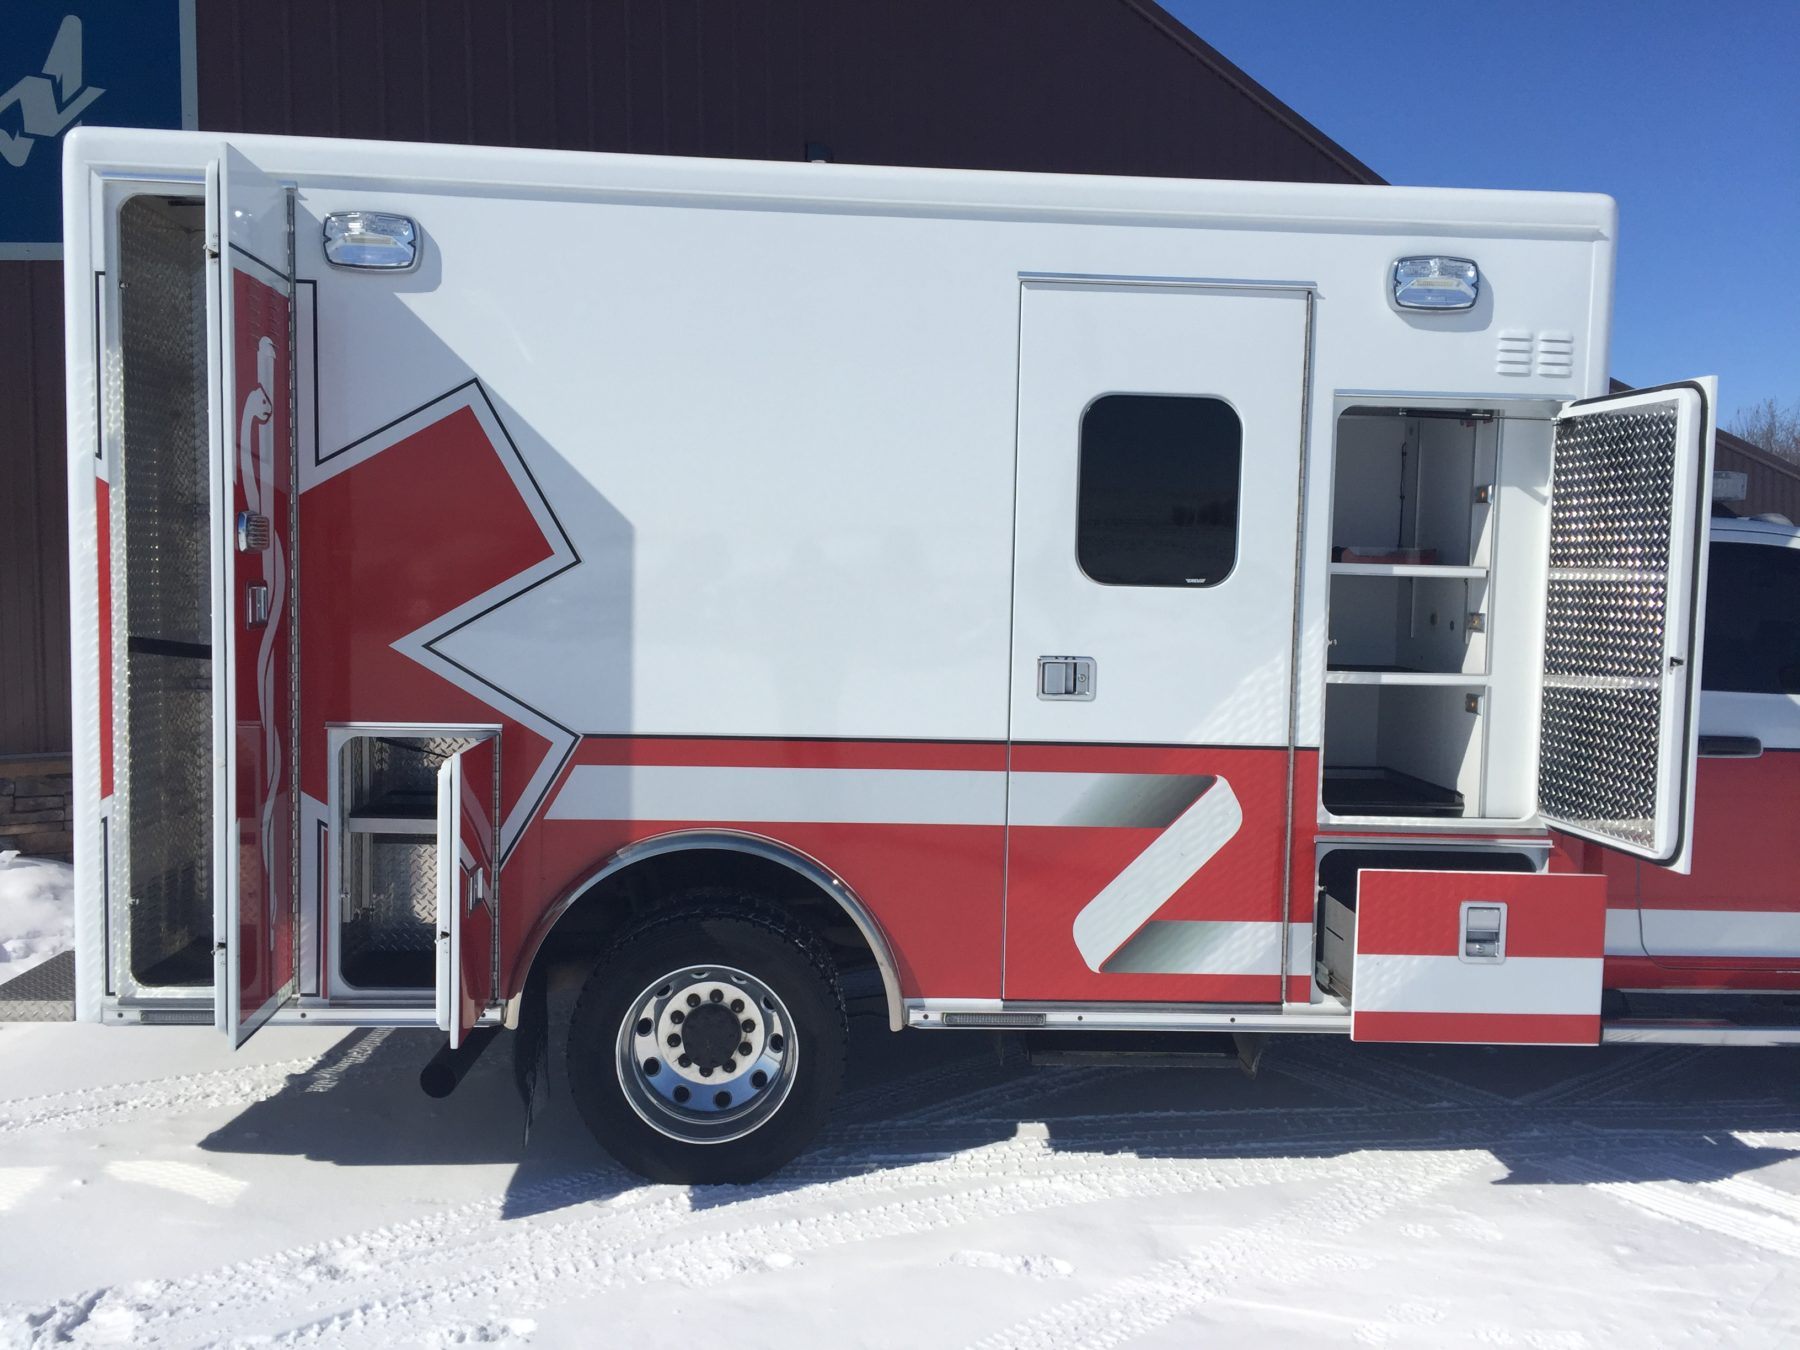 2015 Dodge 4500 4x4 Heavy Duty Ambulance For Sale – Picture 5